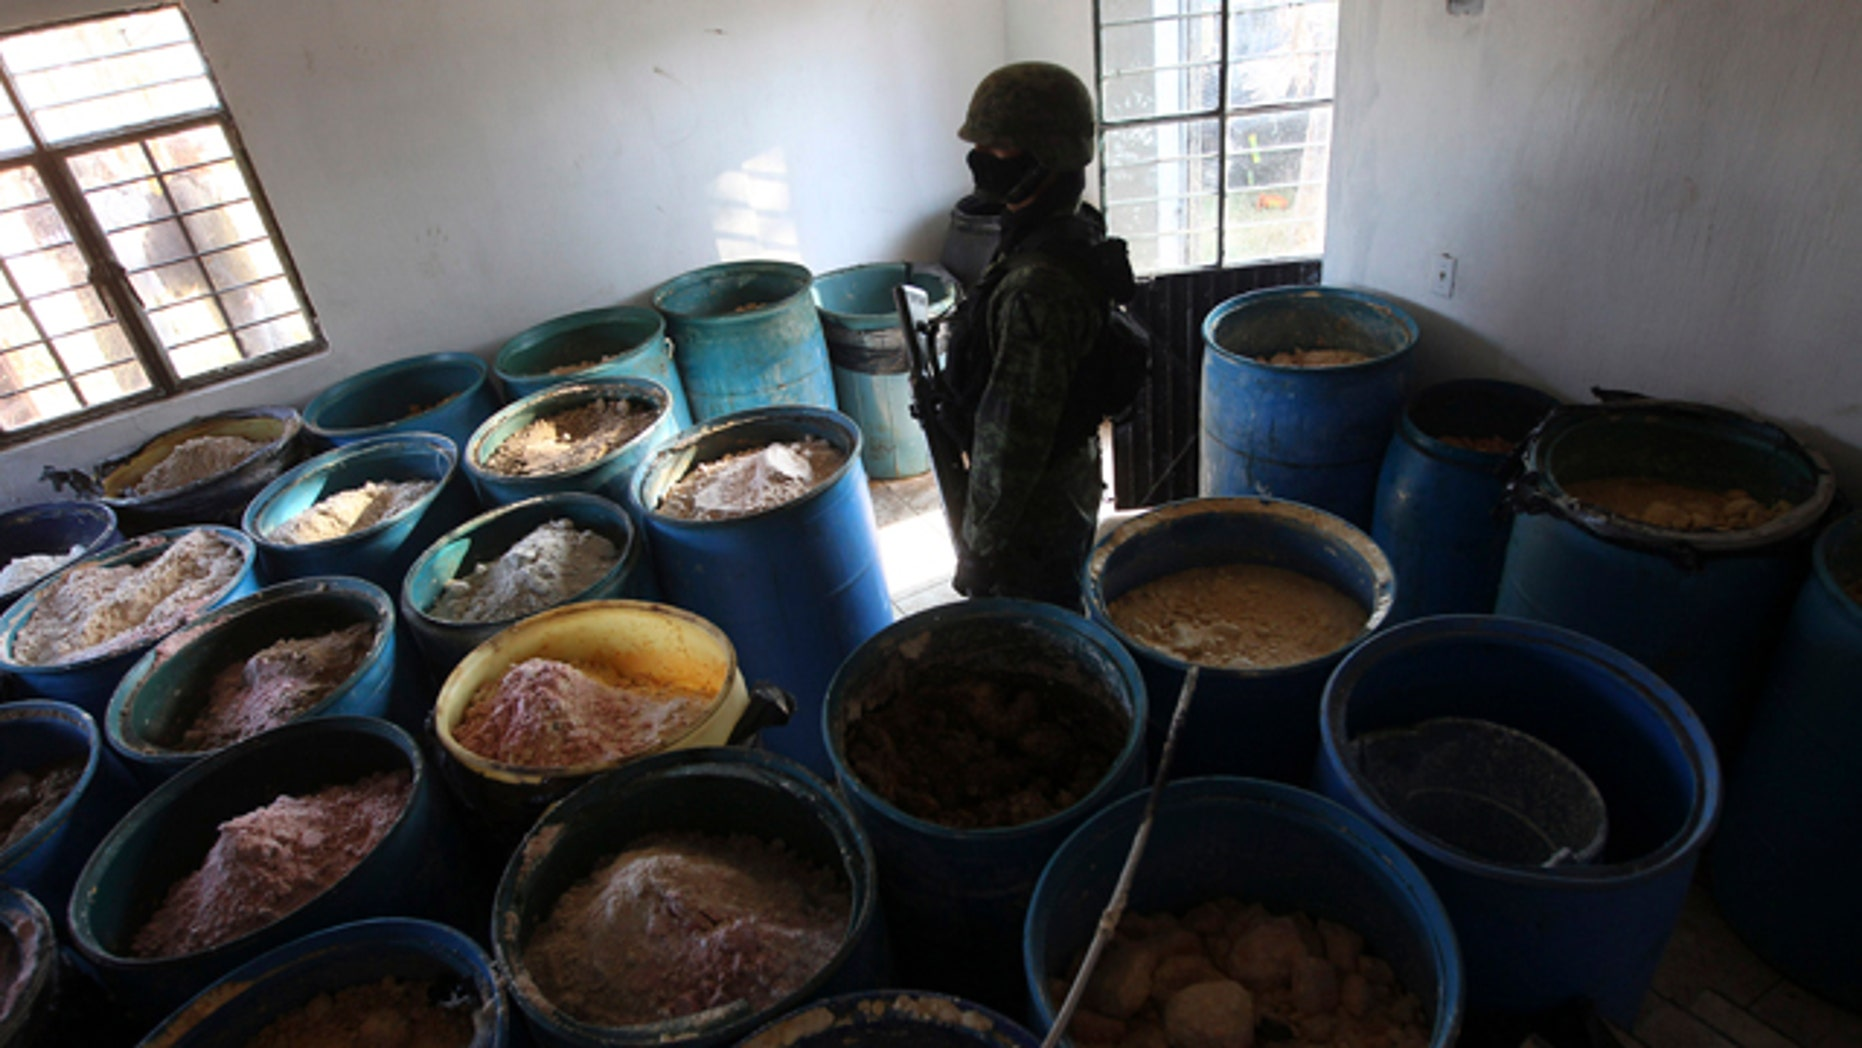 Feb. 9, 2012- A soldier stands in a room full of barrels containing white and yellow powder after a seizure of a small ranch in Tlajomulco de Zuniga, on the outskirts of Guadalajara, Mexico. According to the Mexican army, 15 tons of pure methamphetamine were seized at the ranch, an amount equivalent to half of all meth seizures worldwide in 2009.